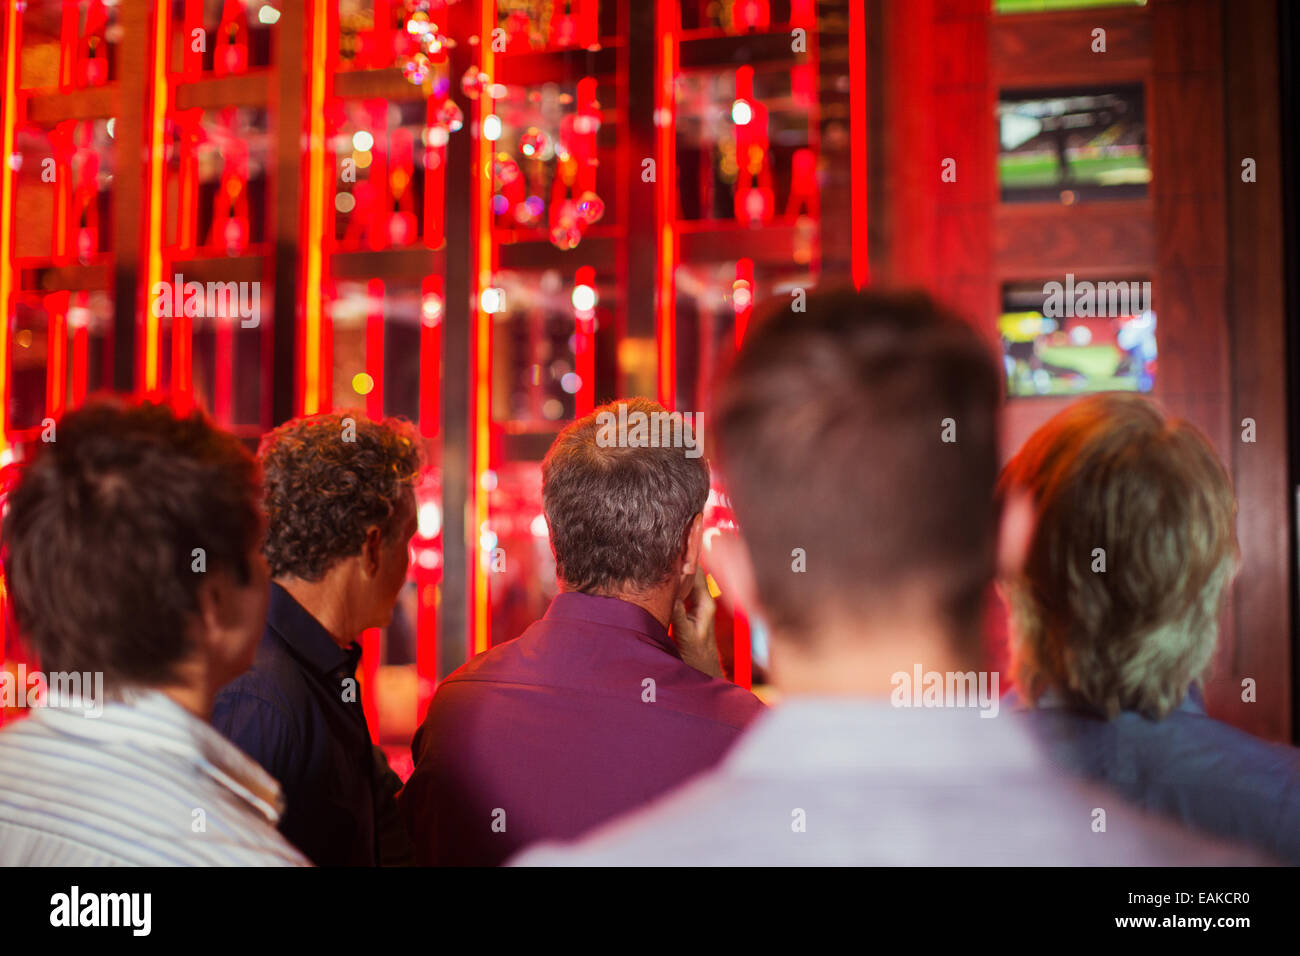 Rear view of group of men watching TV in bar - Stock Image